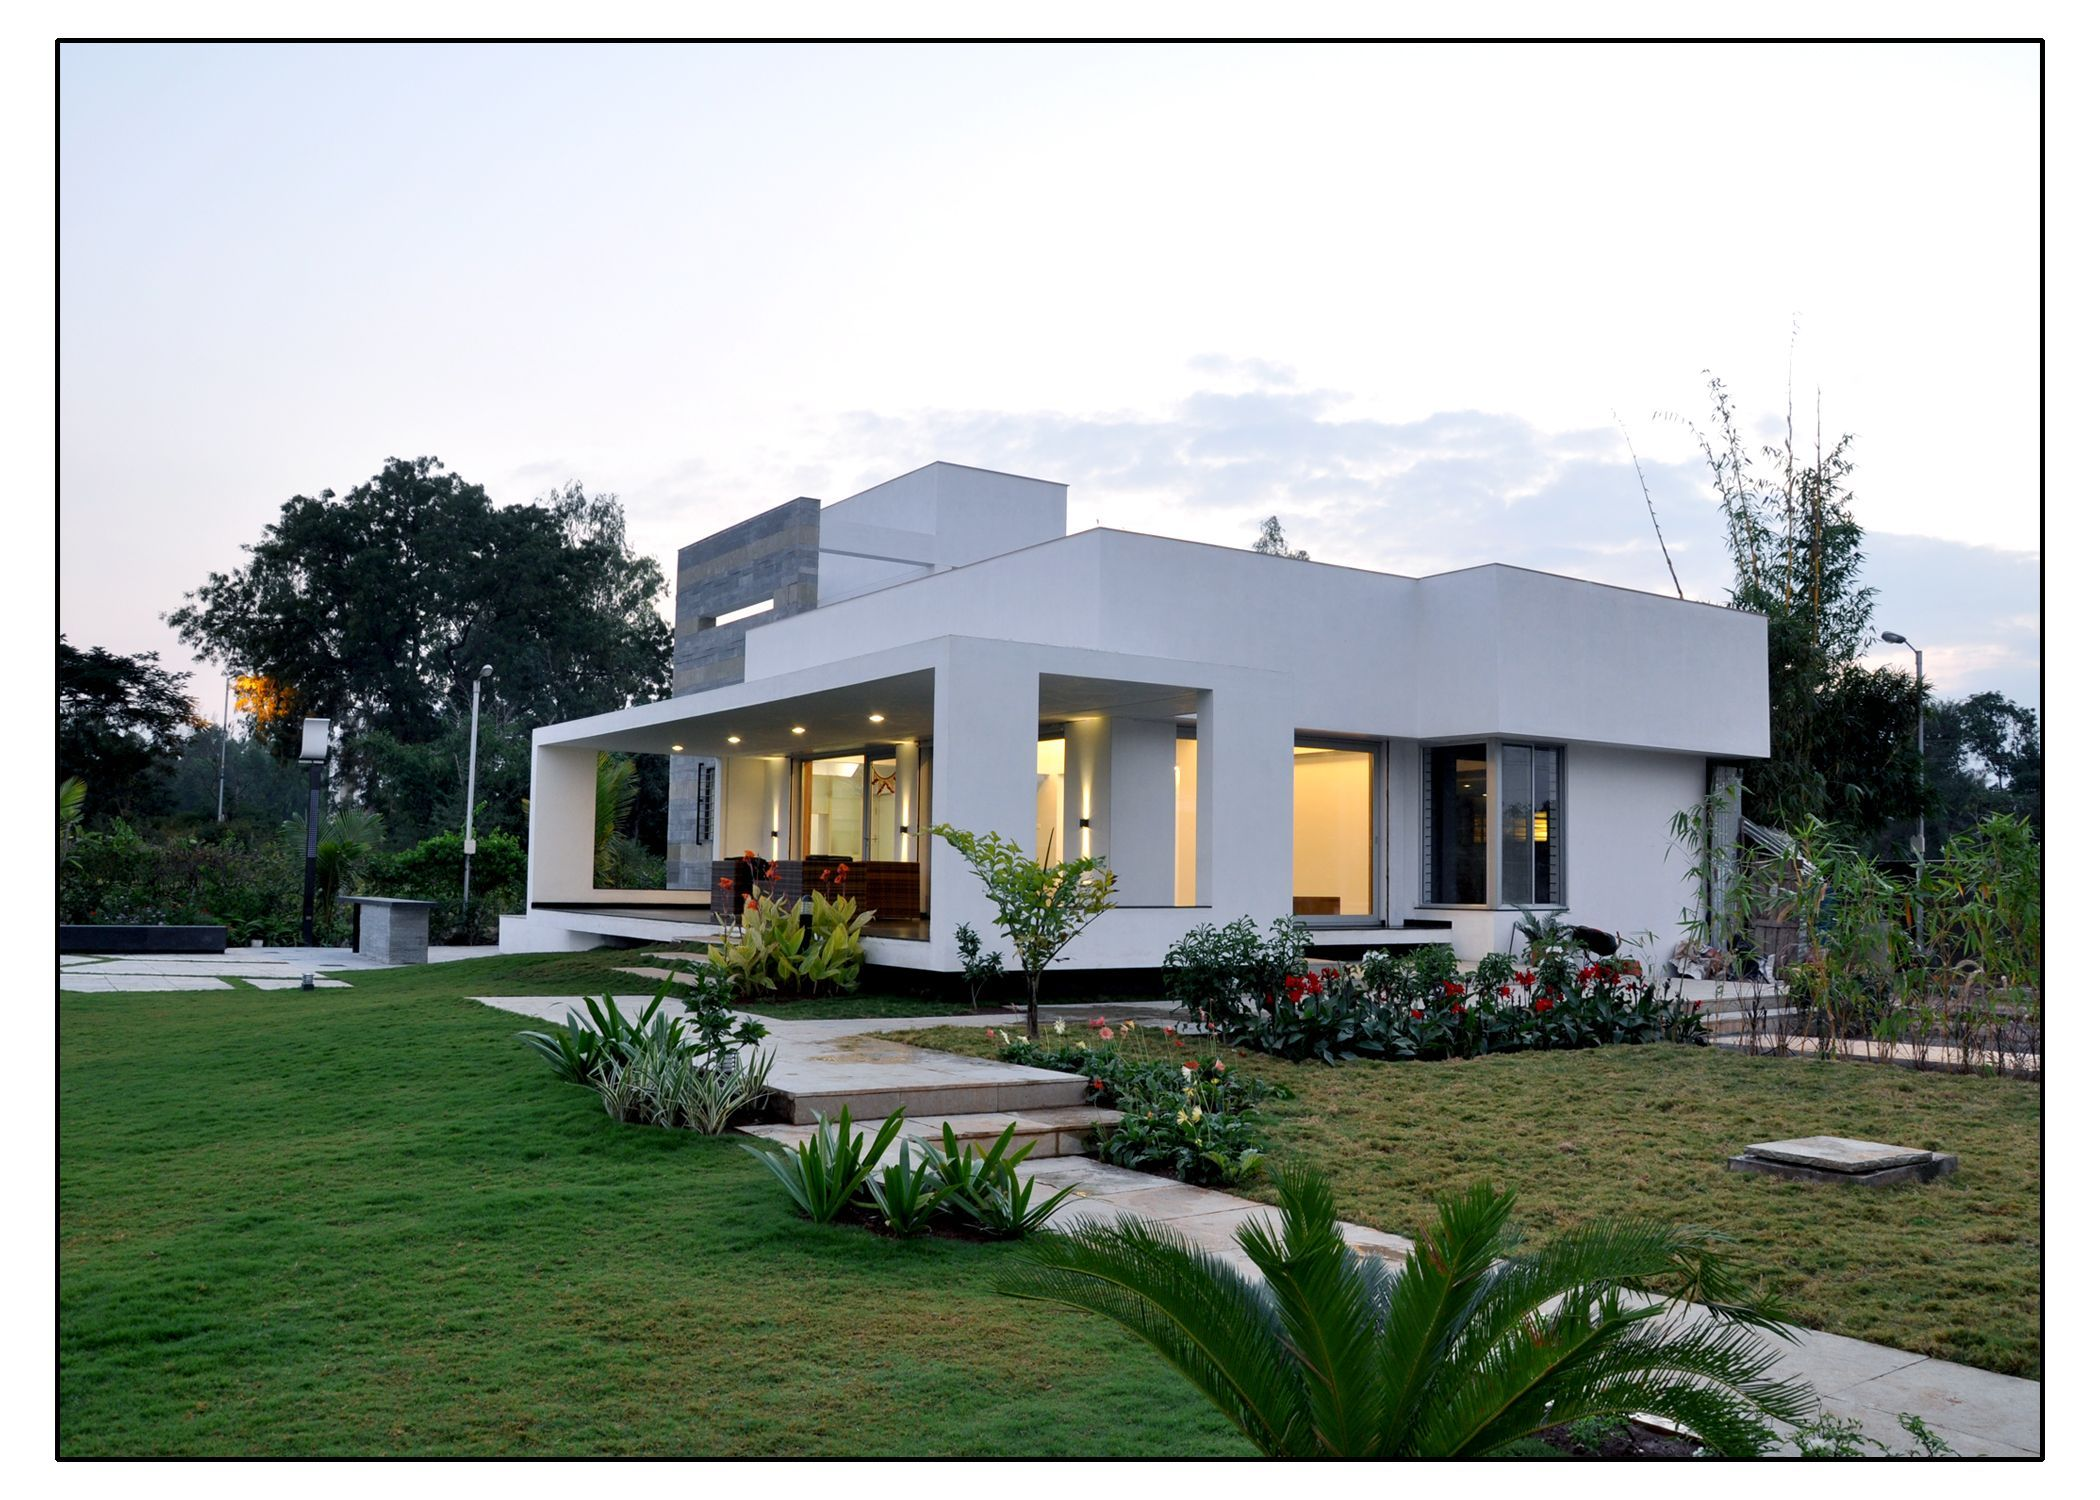 Architecture Design For Indian Homes image result for traditional indian farmhouse designs | farm house